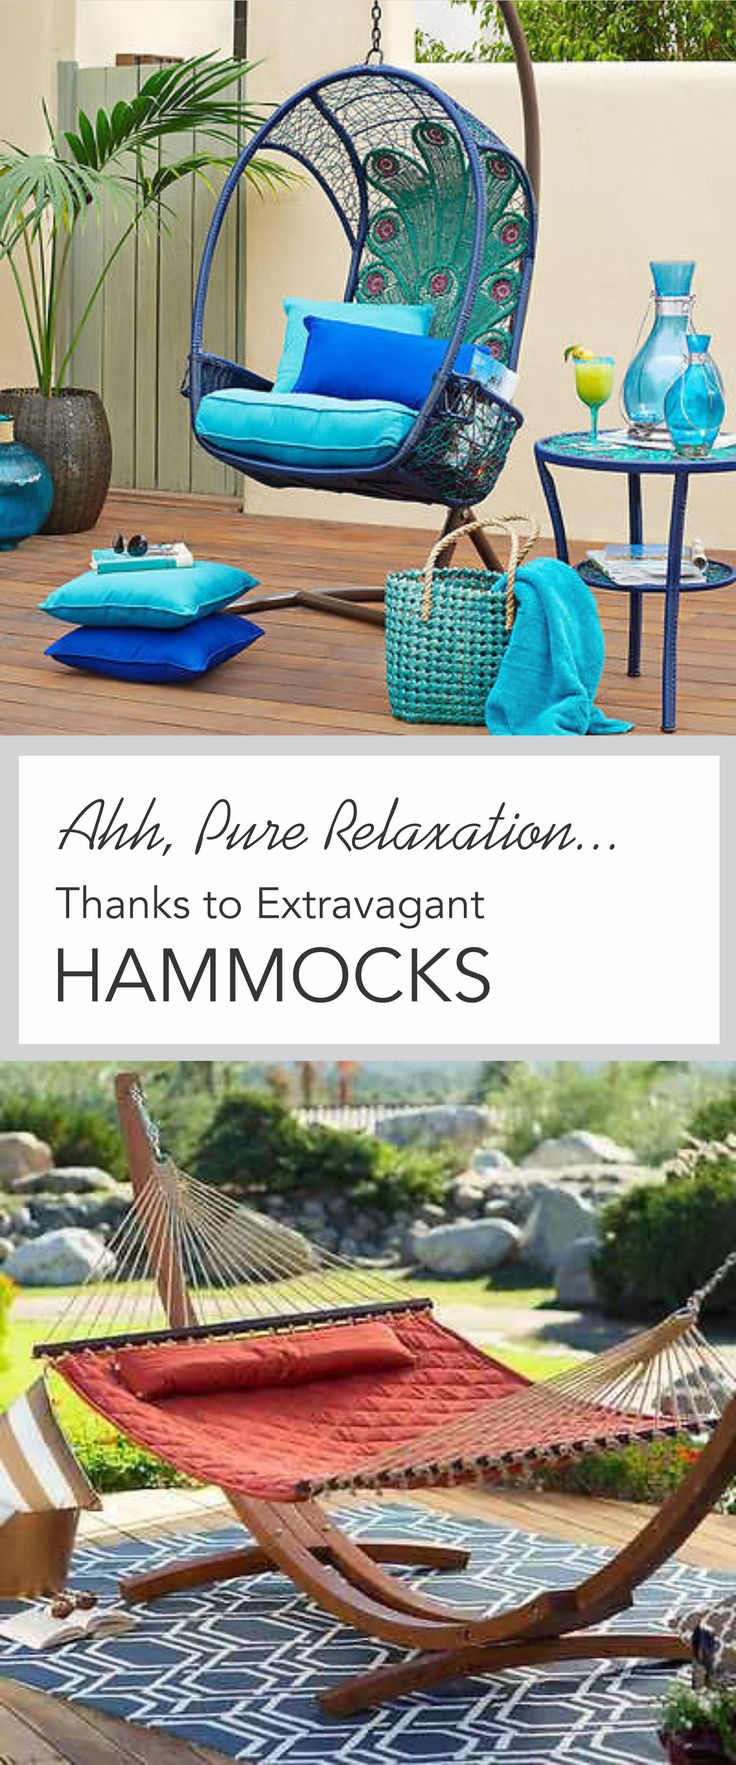 Hammock instead of a bed - 9 Extravagant Hammocks That Take Outdoor Lounging To A New Level